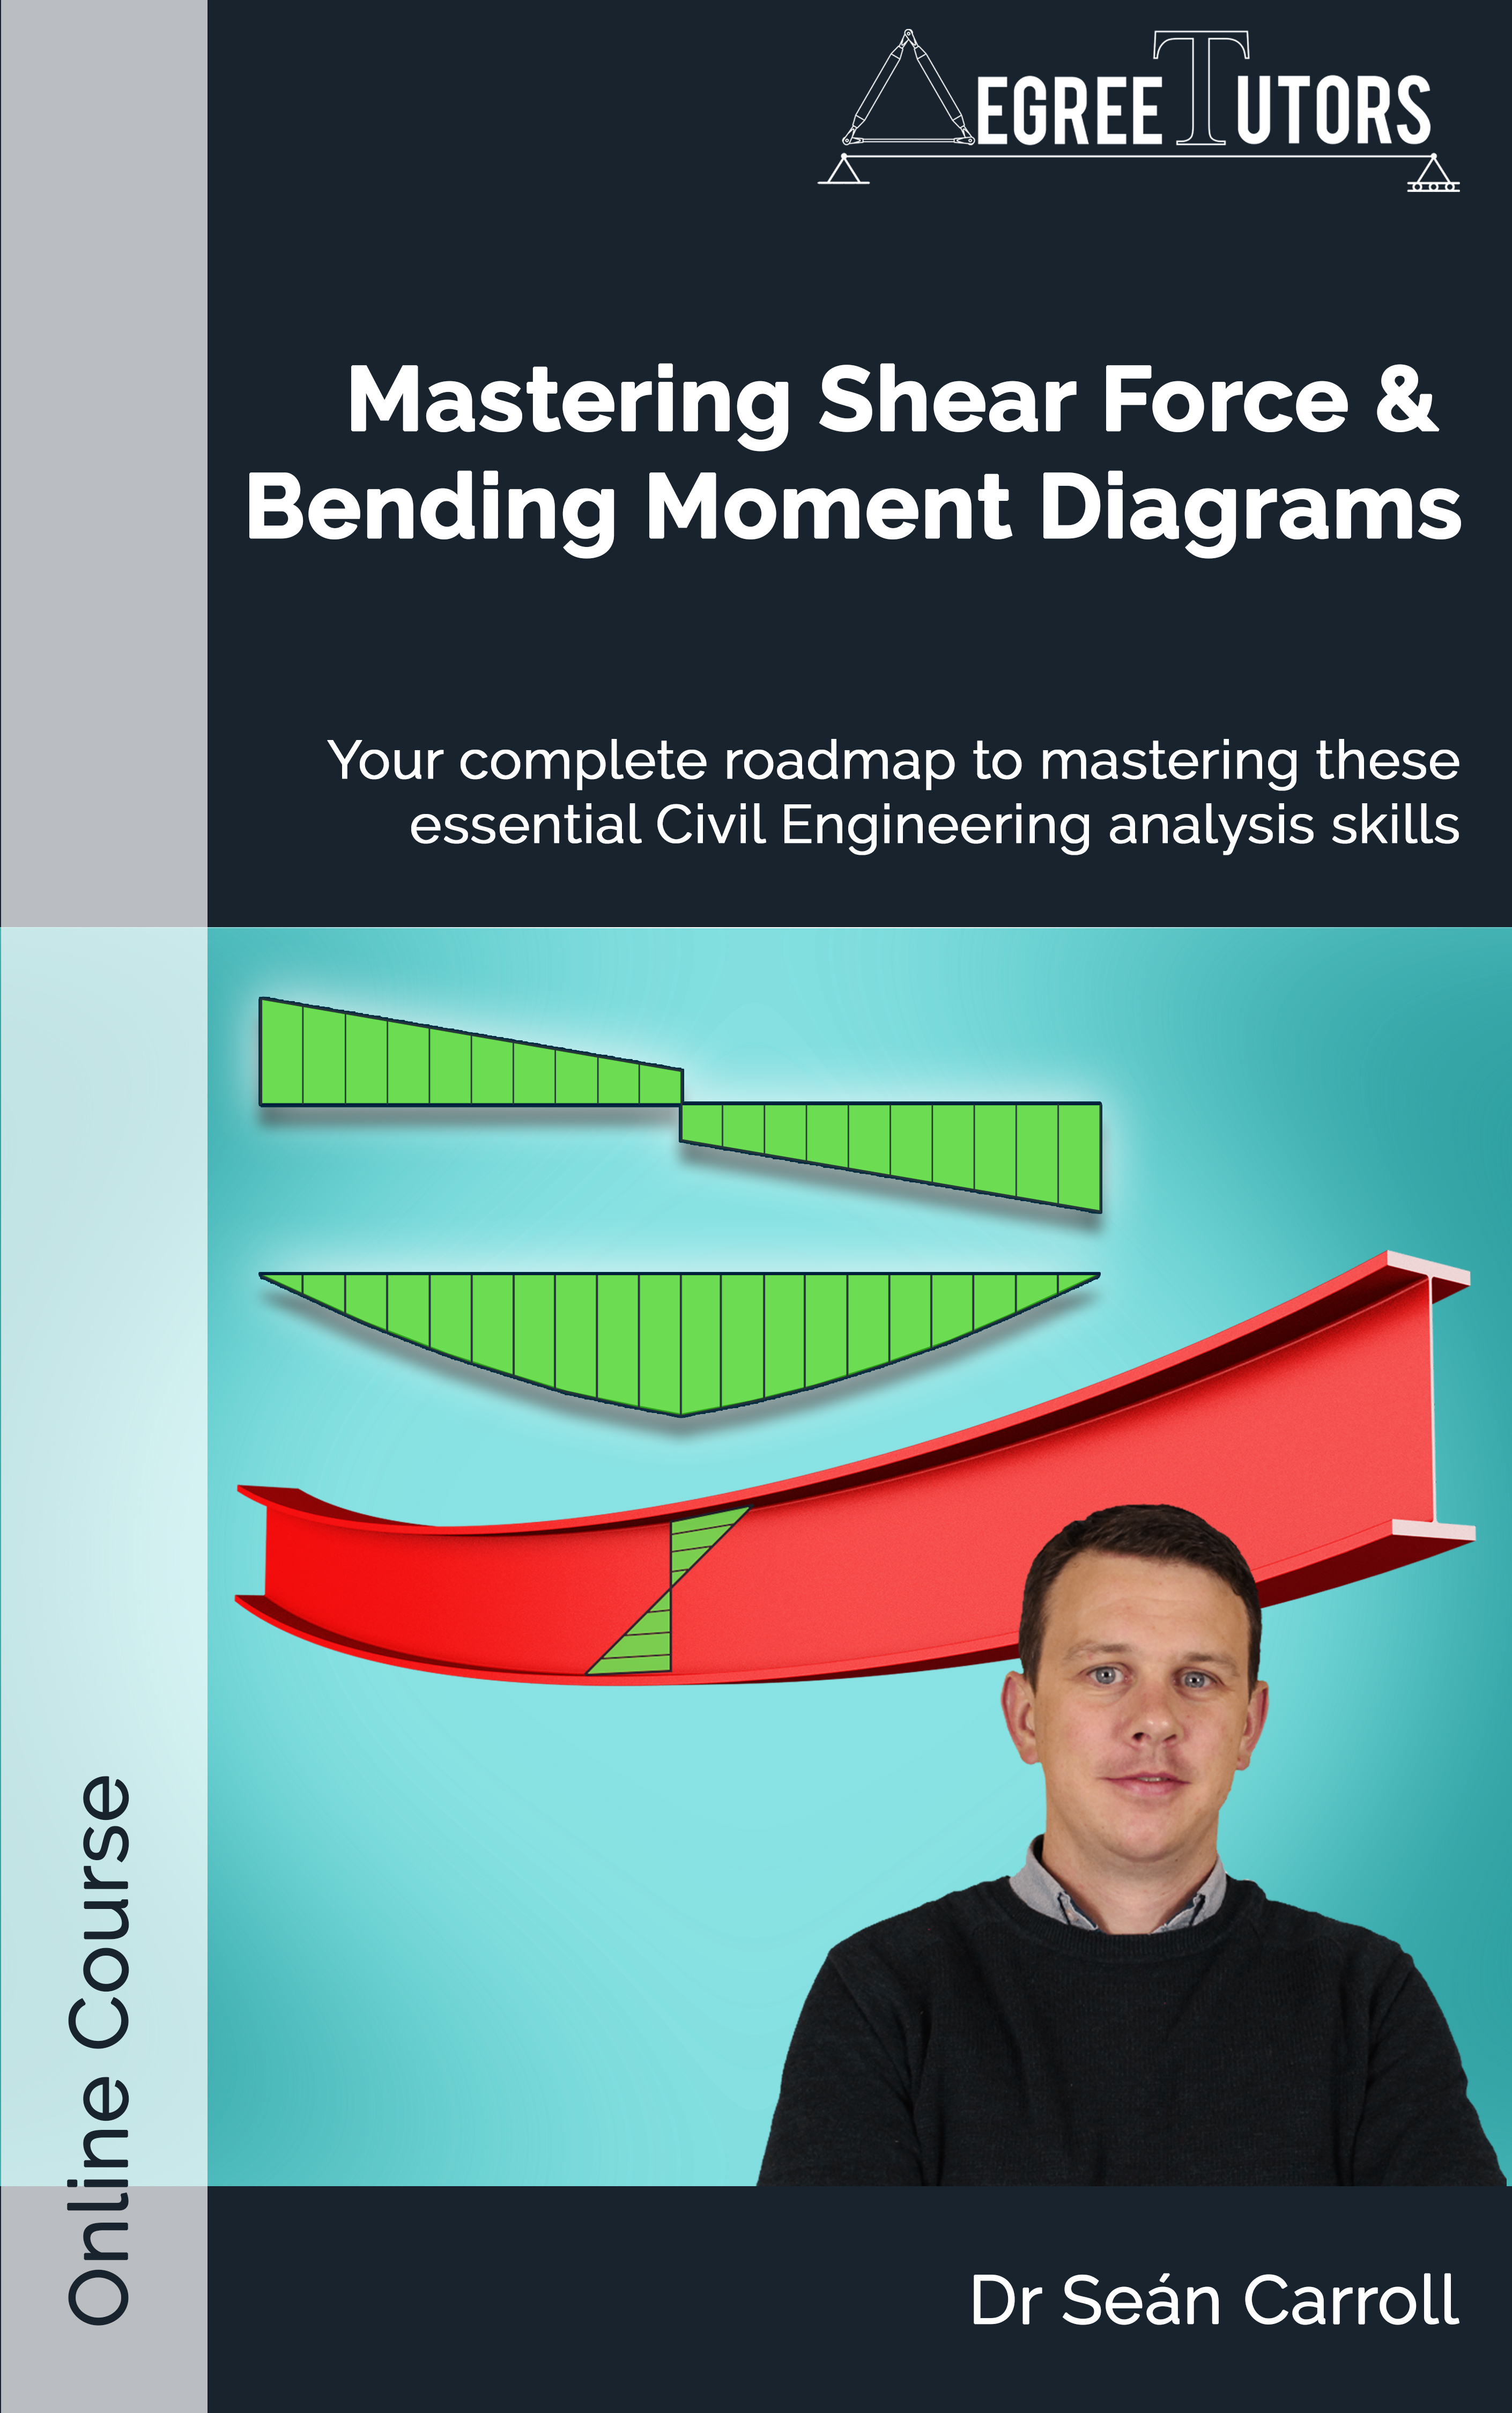 (Mastering Shear Force and Bending Moment Diagrams (Online Video Course) [Online Code])